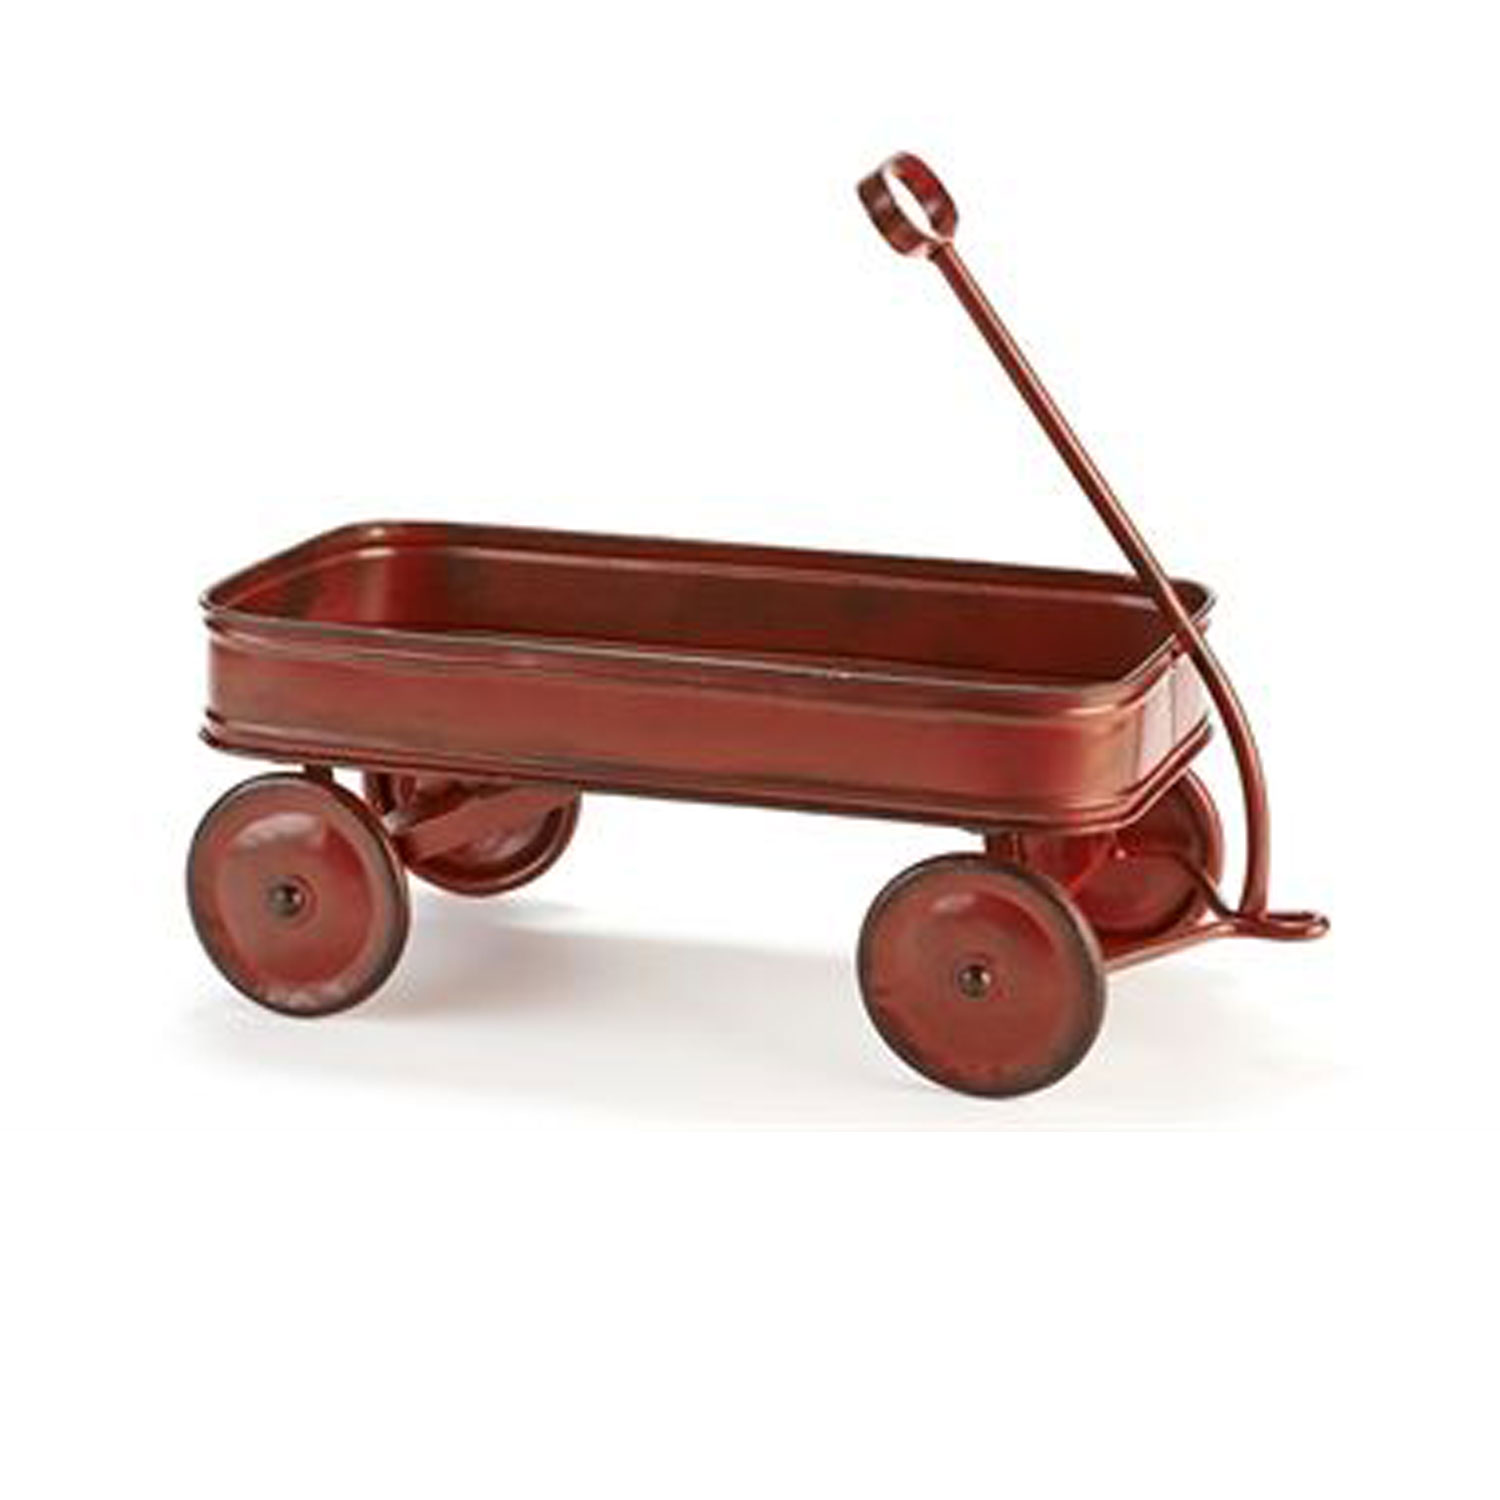 Giftcraft 083599 Antique Red Wagon Table Decor Hope